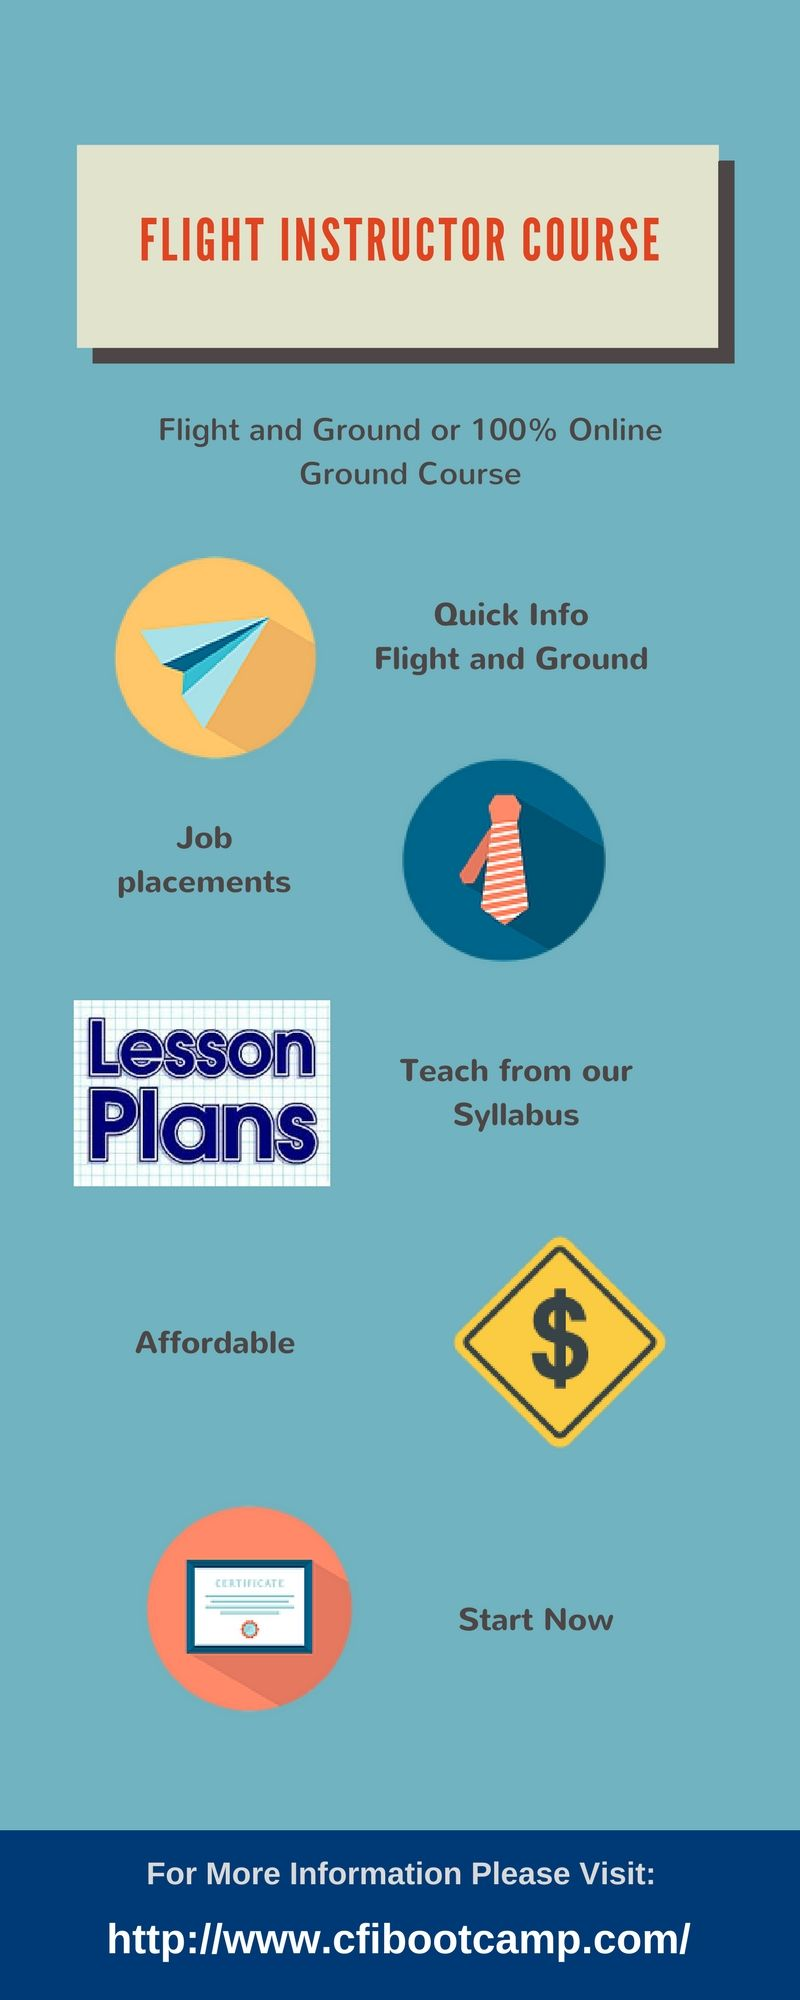 Finding for online flight instructor course than just make